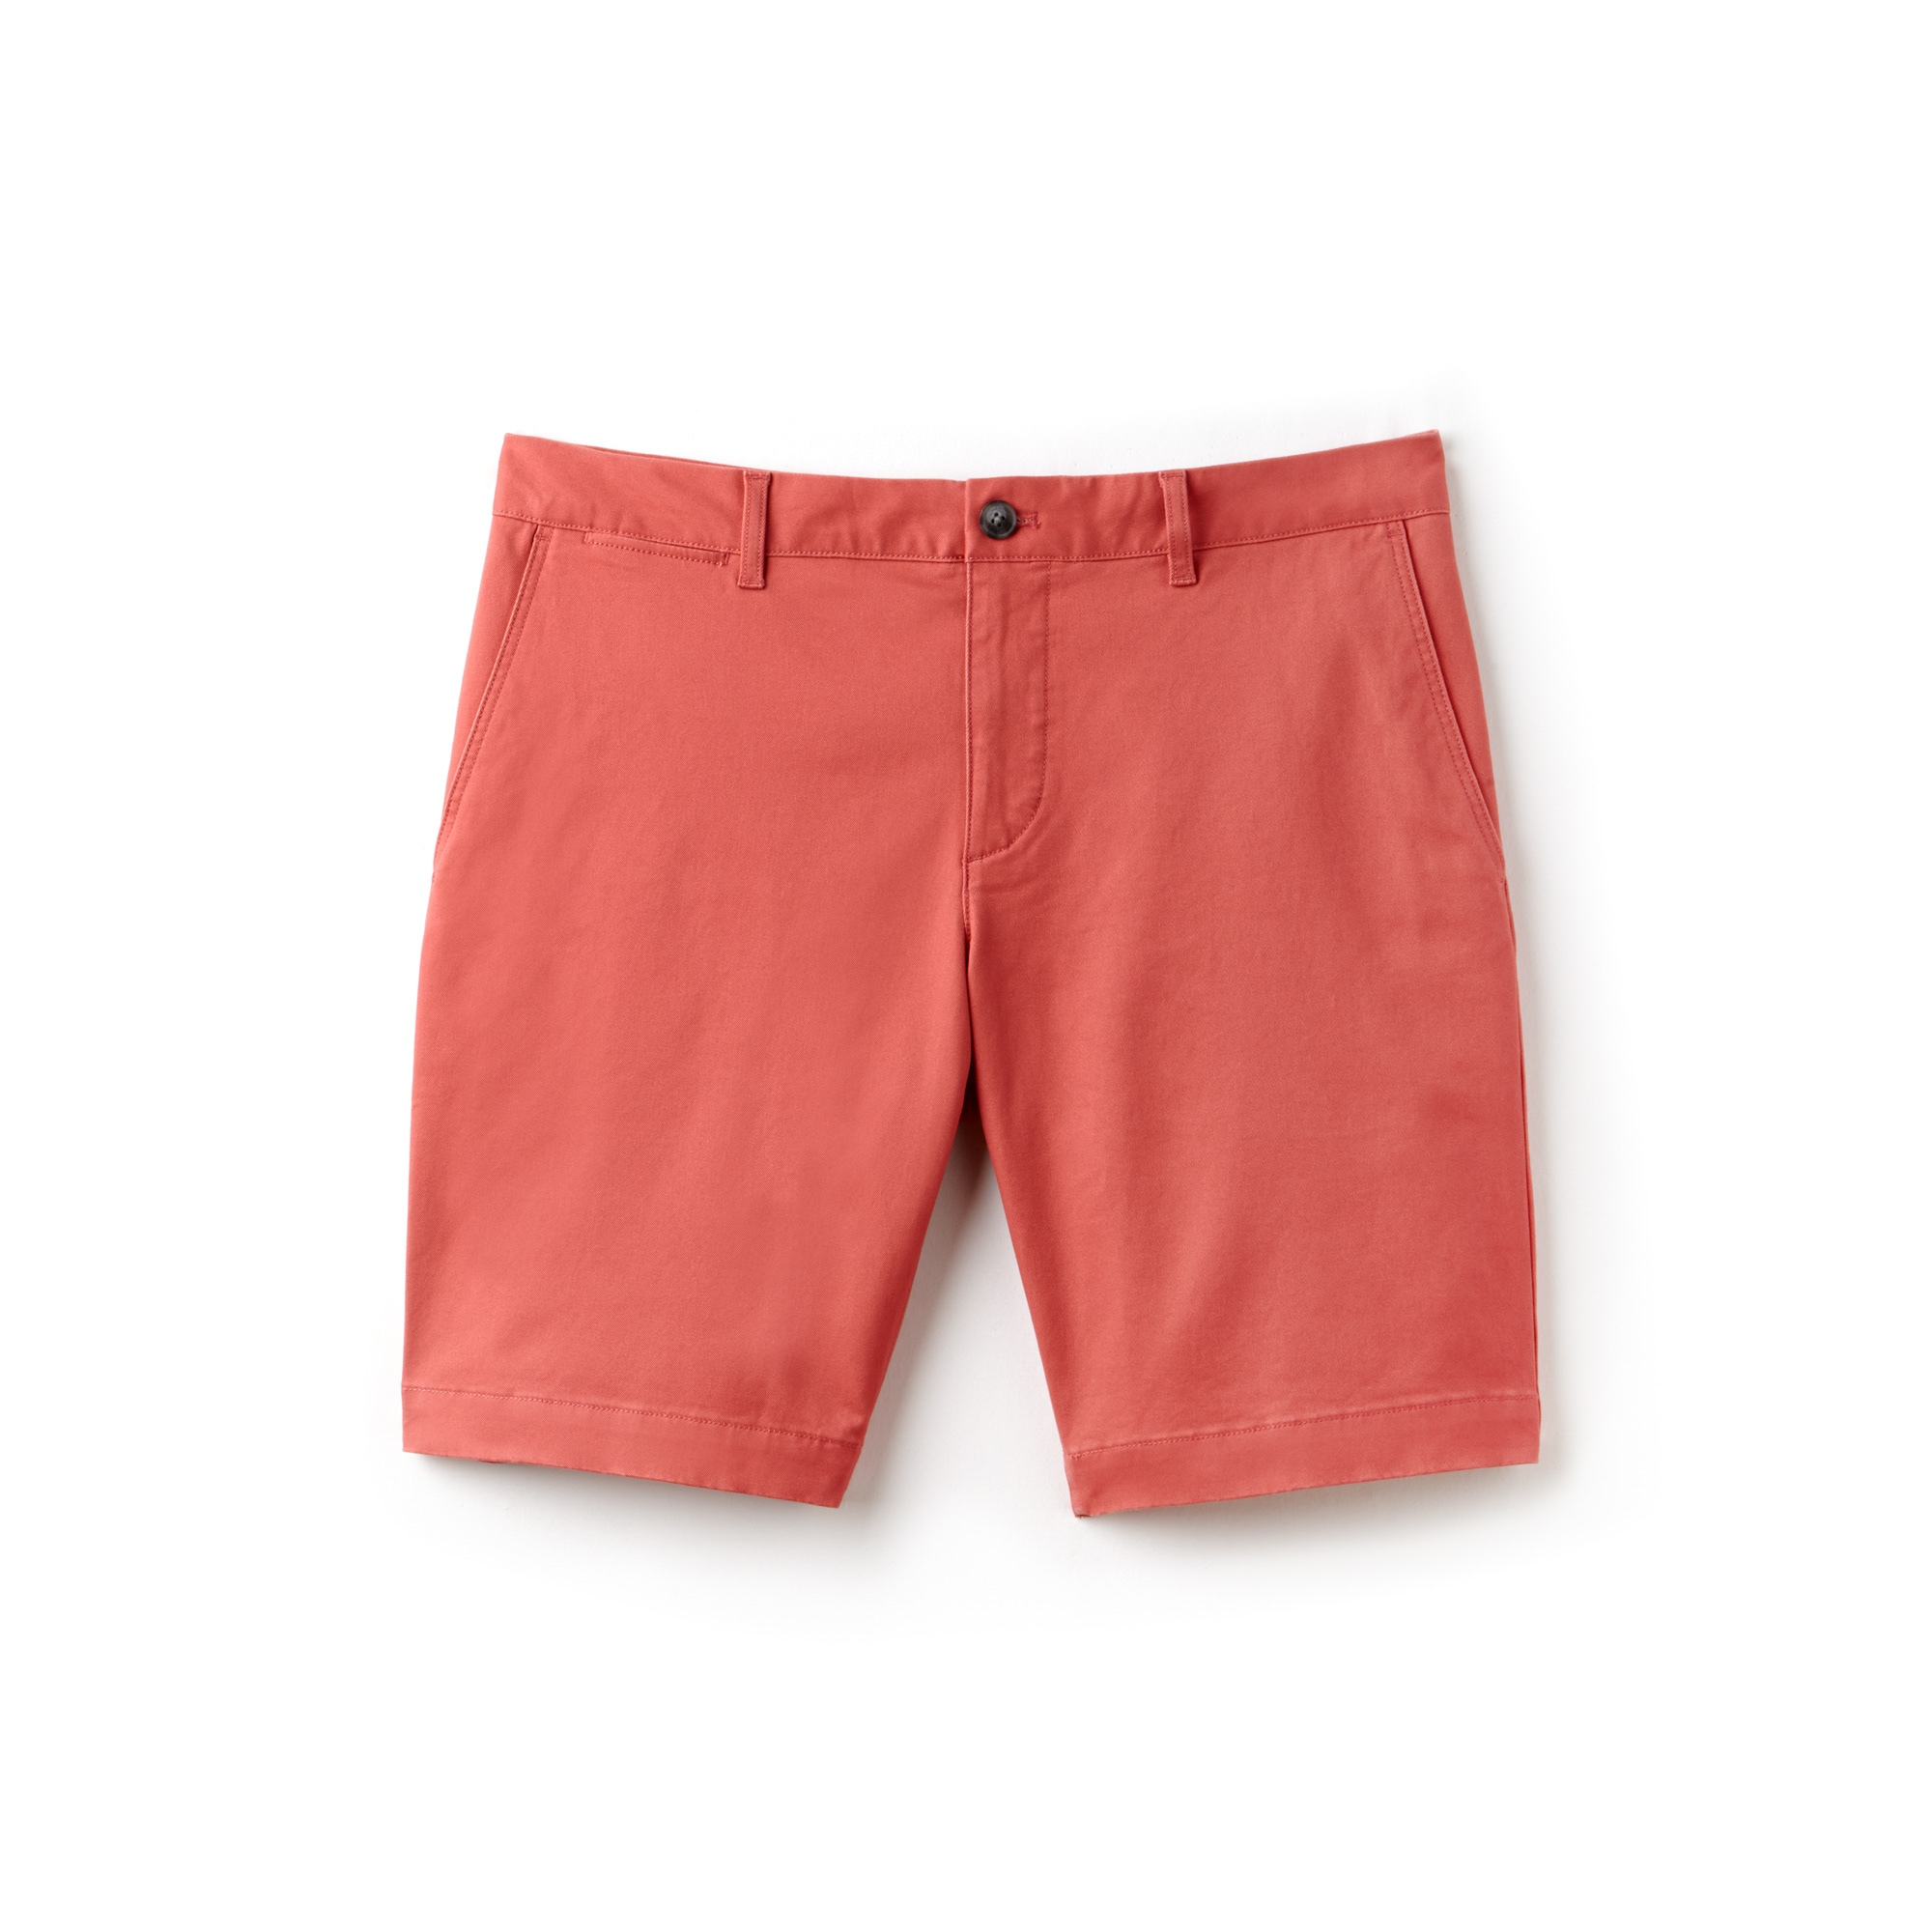 라코스테 반바지 Lacoste Mens Slim Fit Stretch Bermuda Shorts,sierra red